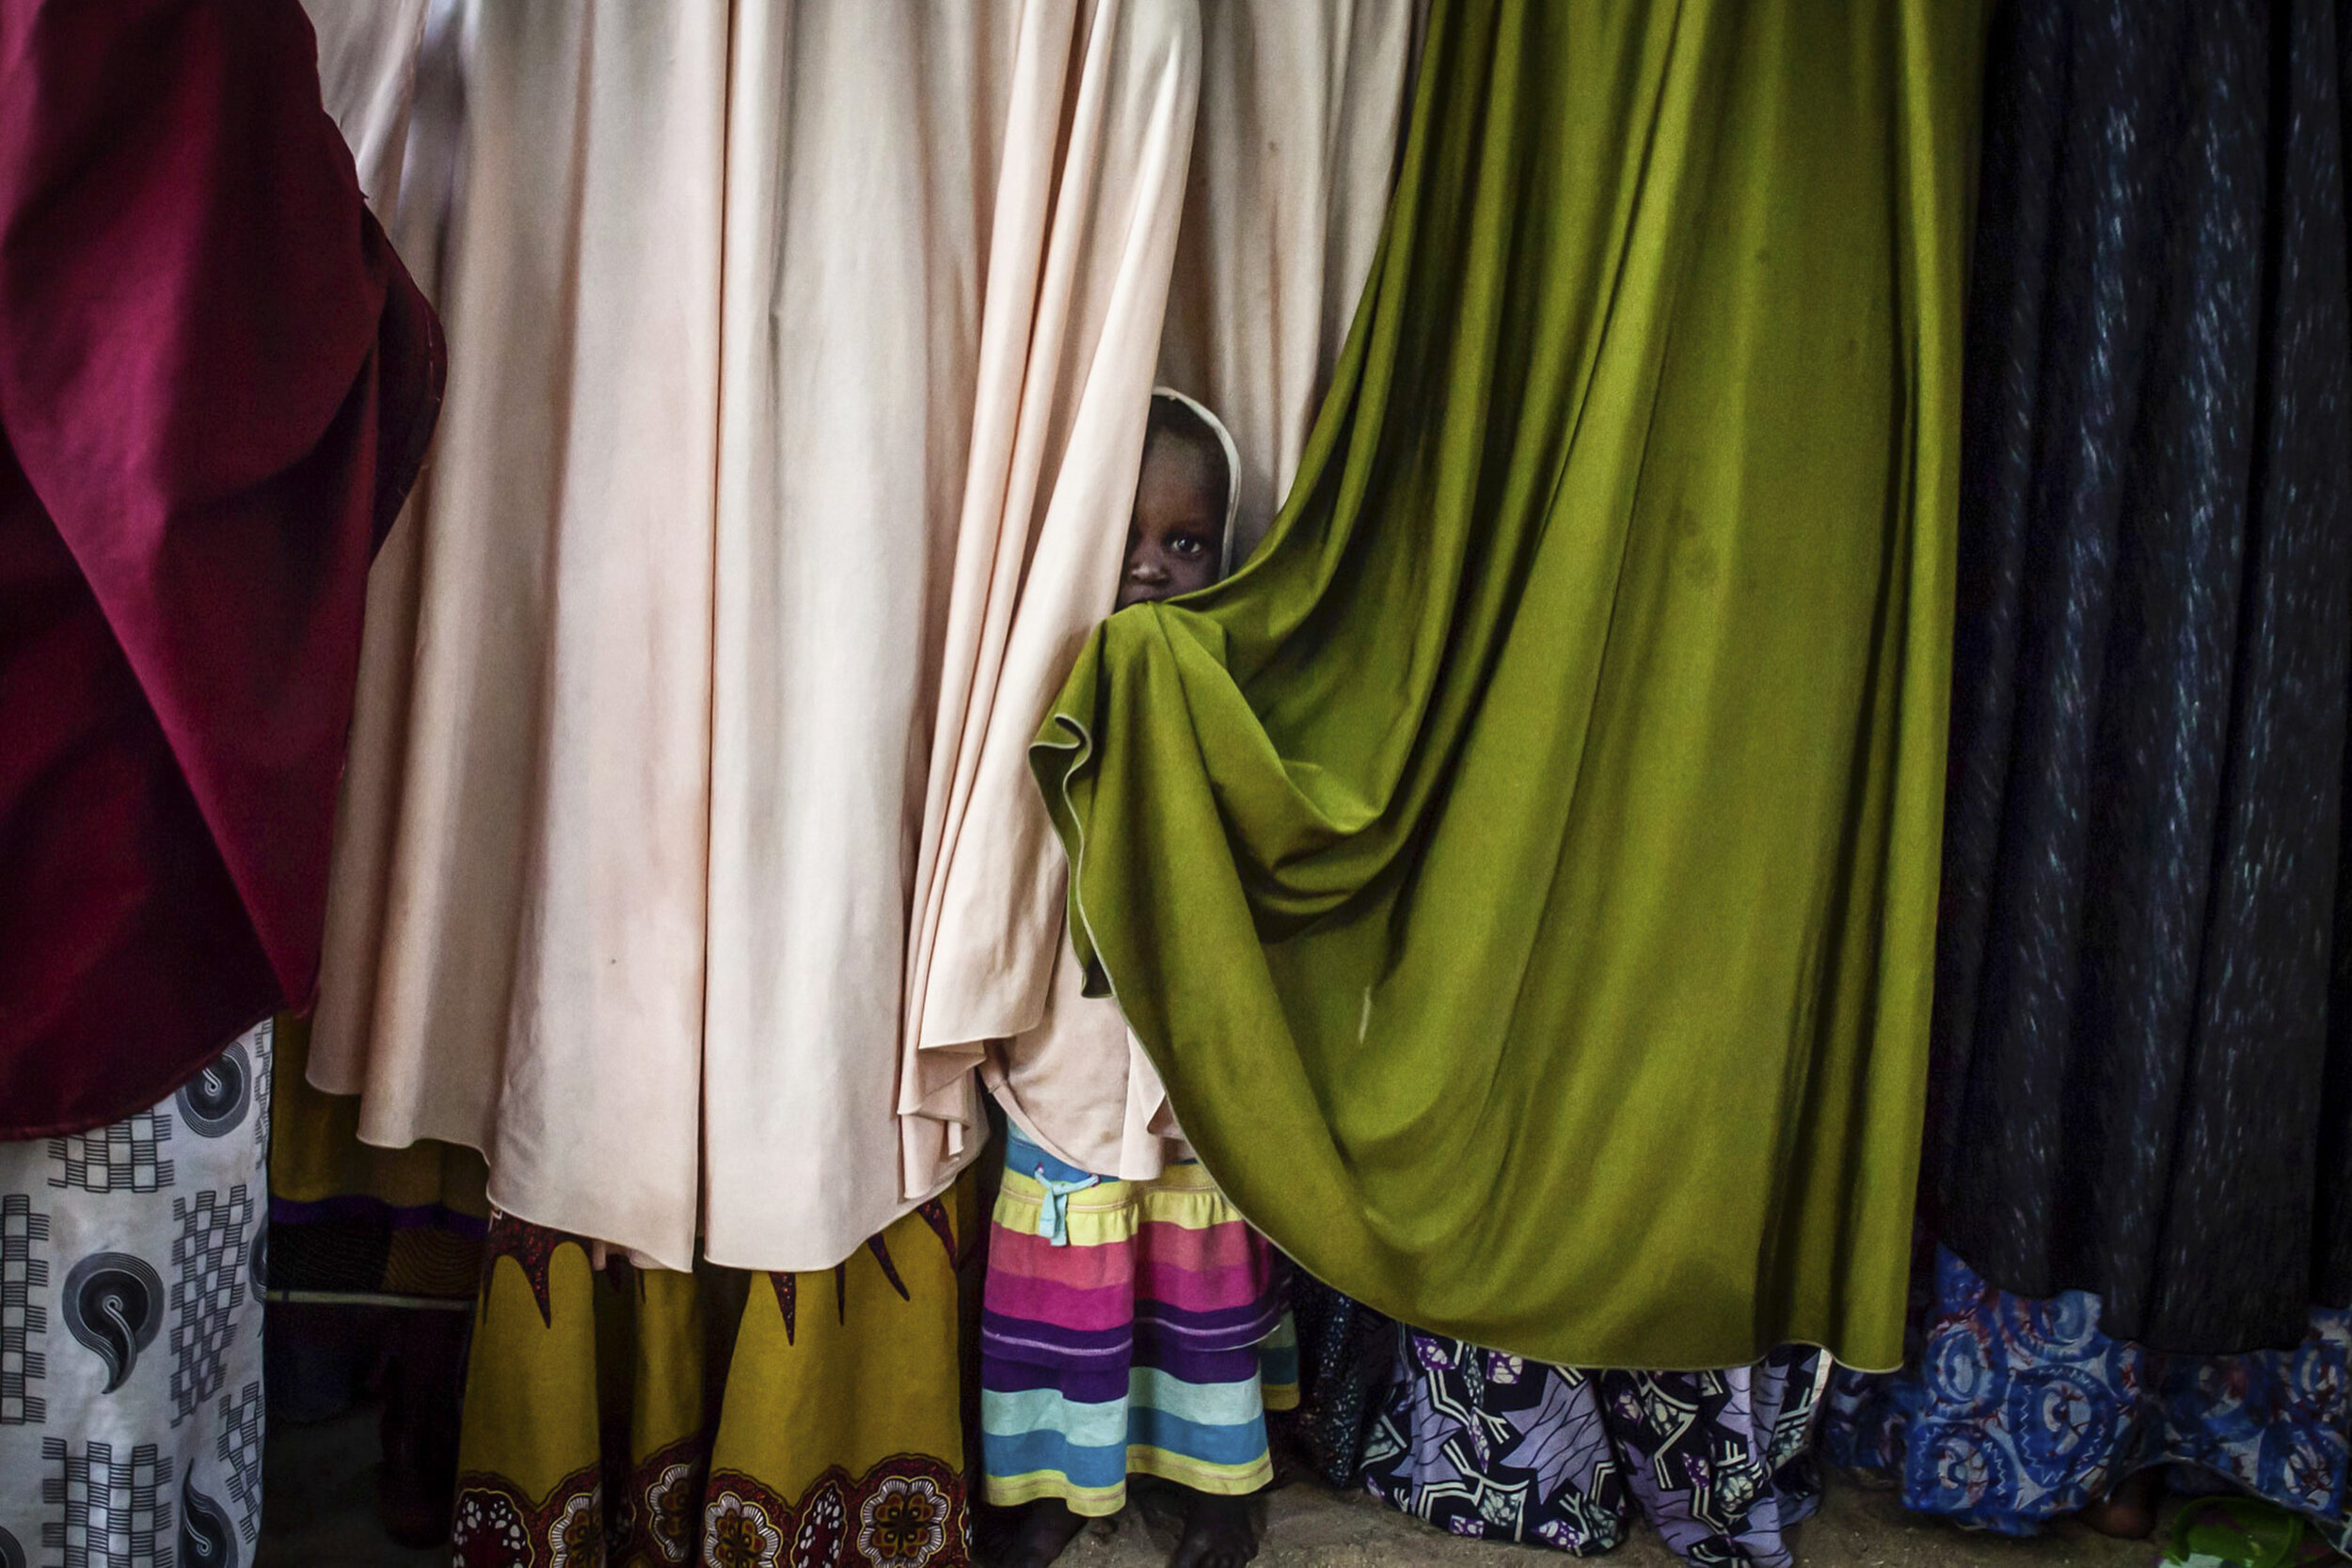 """The daughter of a former Boko Haram commander plays between the chadors of their wives at a """"safe house"""" in Maiduguri, Nigeria."""